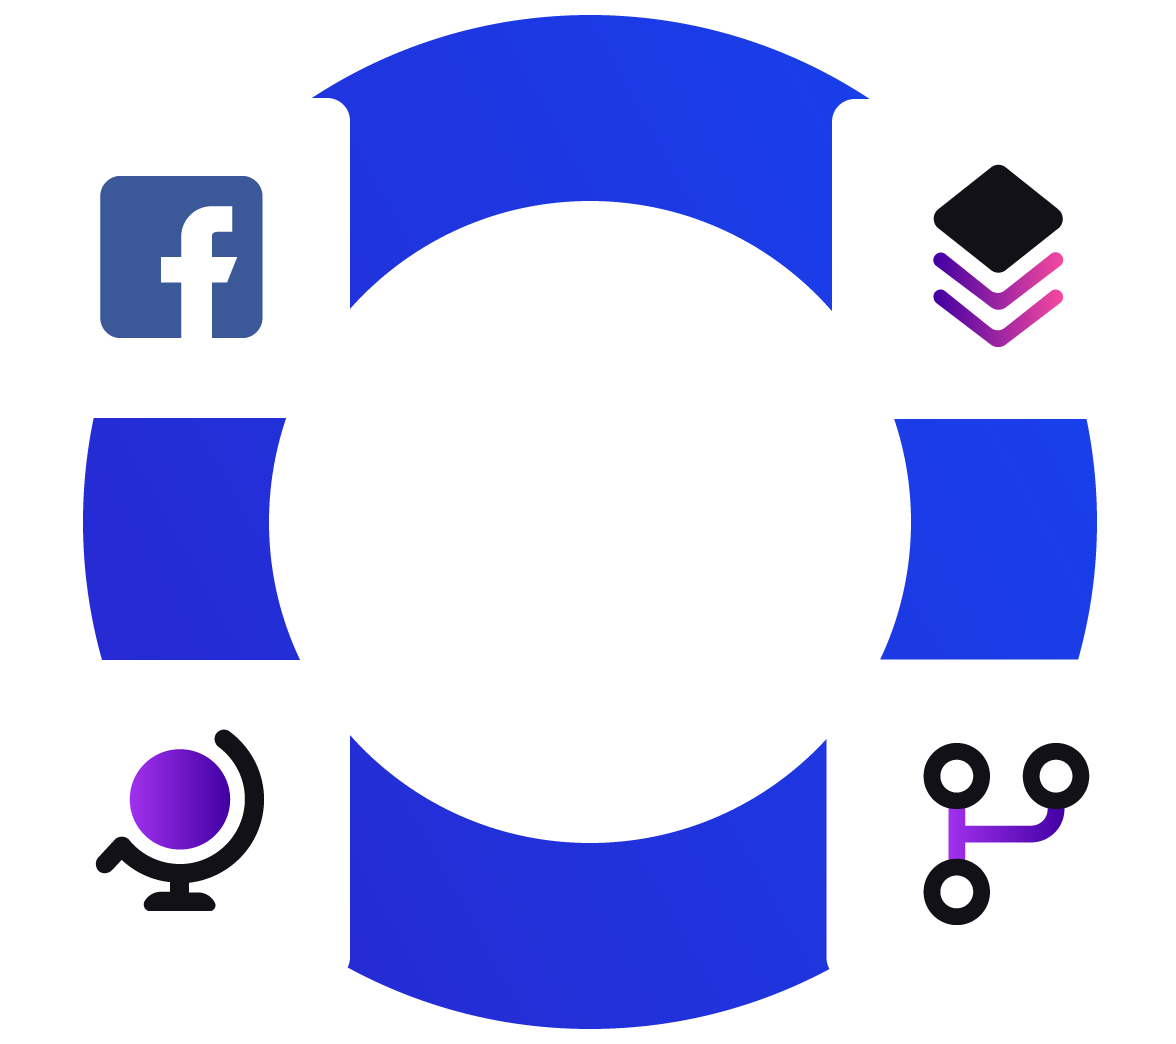 Circle with facebook